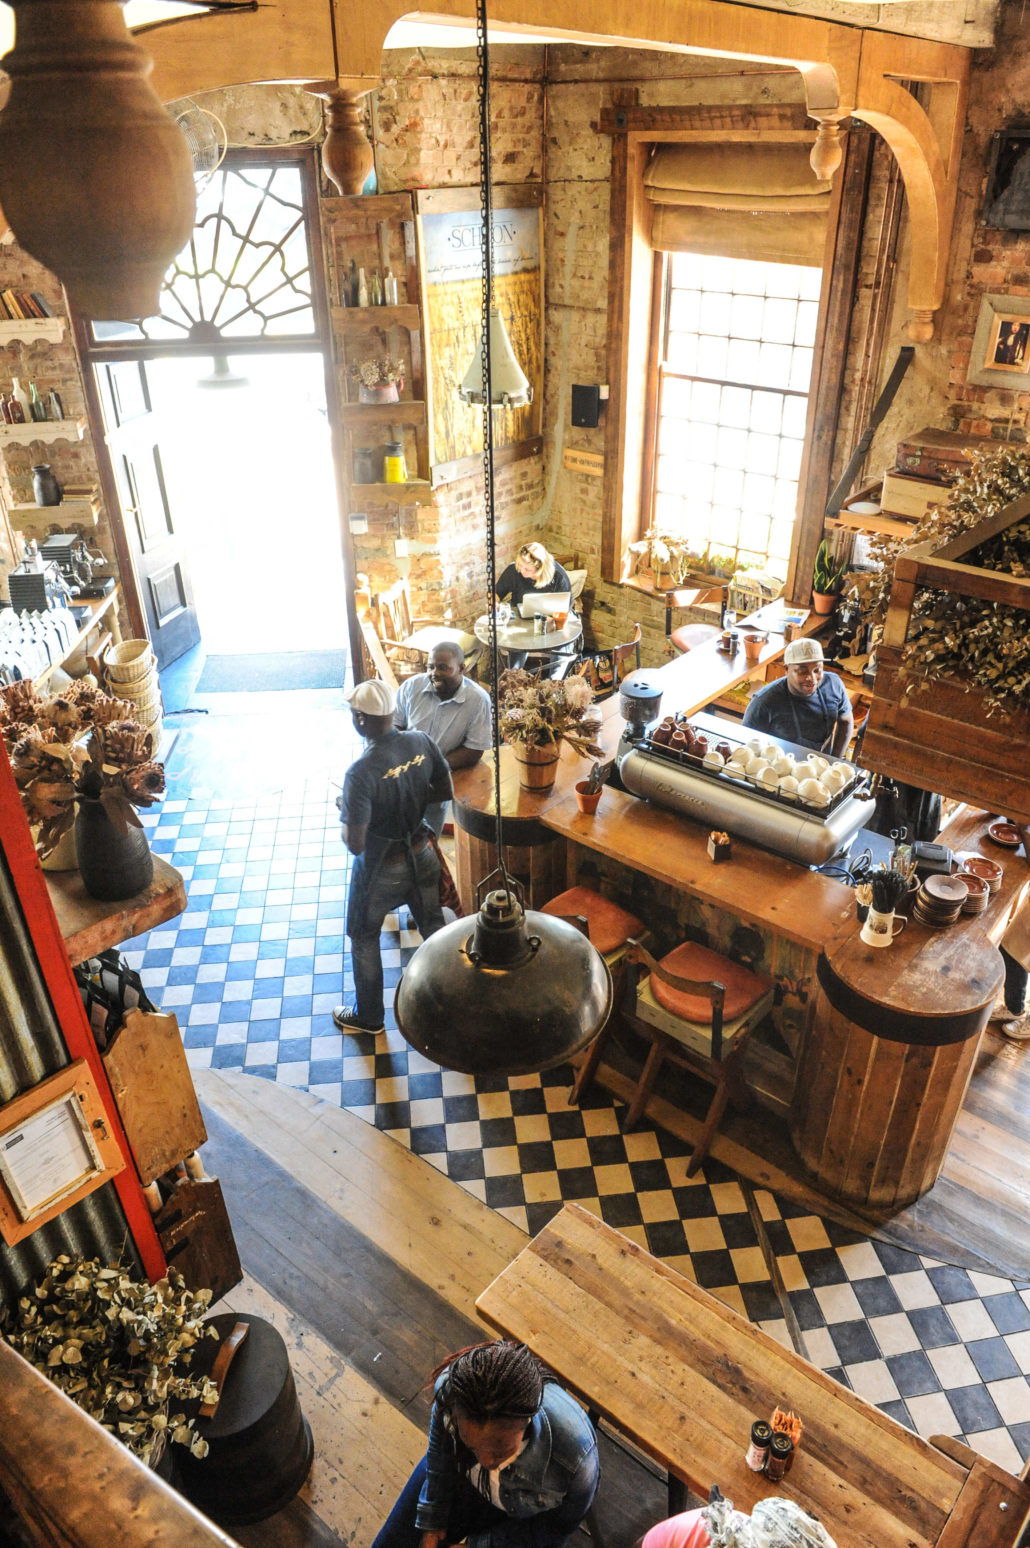 Schoon: It's not just a bakery, it's a collaboration of artists and artisans under one roof